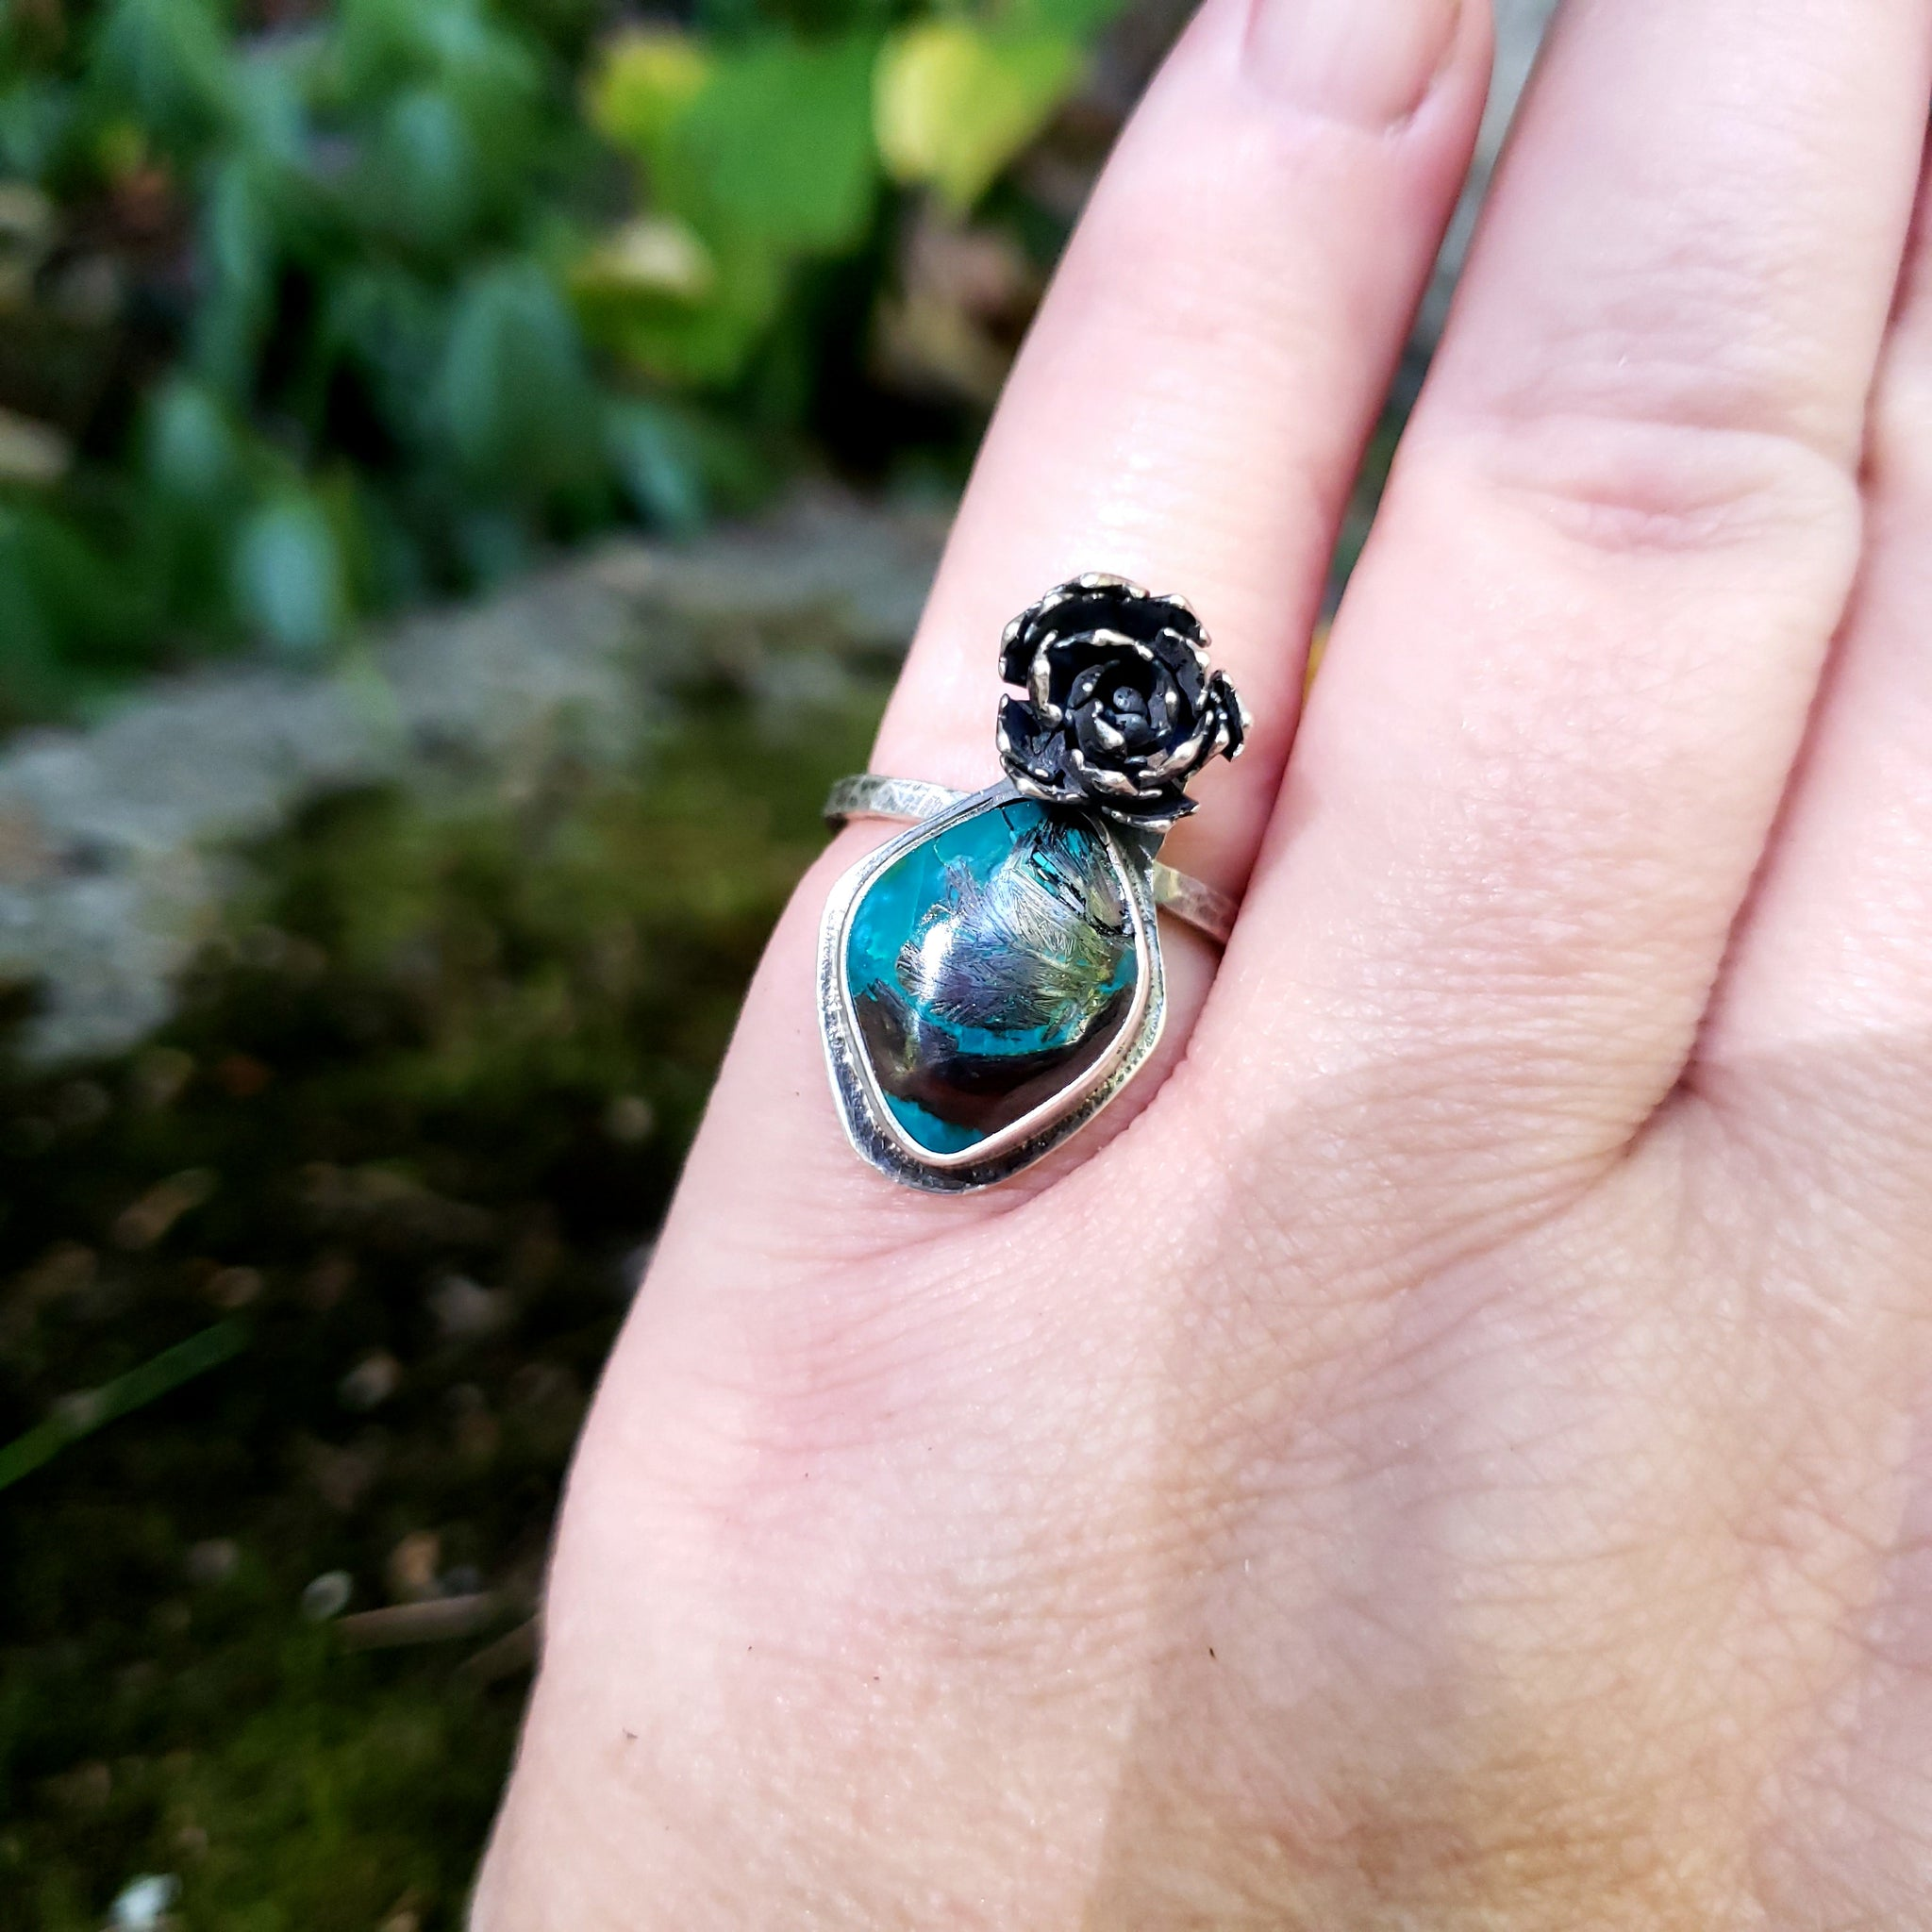 The Woodland Collection - Succulent Ring with Gem Chrysocolla Cuprite in Sterling Silver Size 7.25